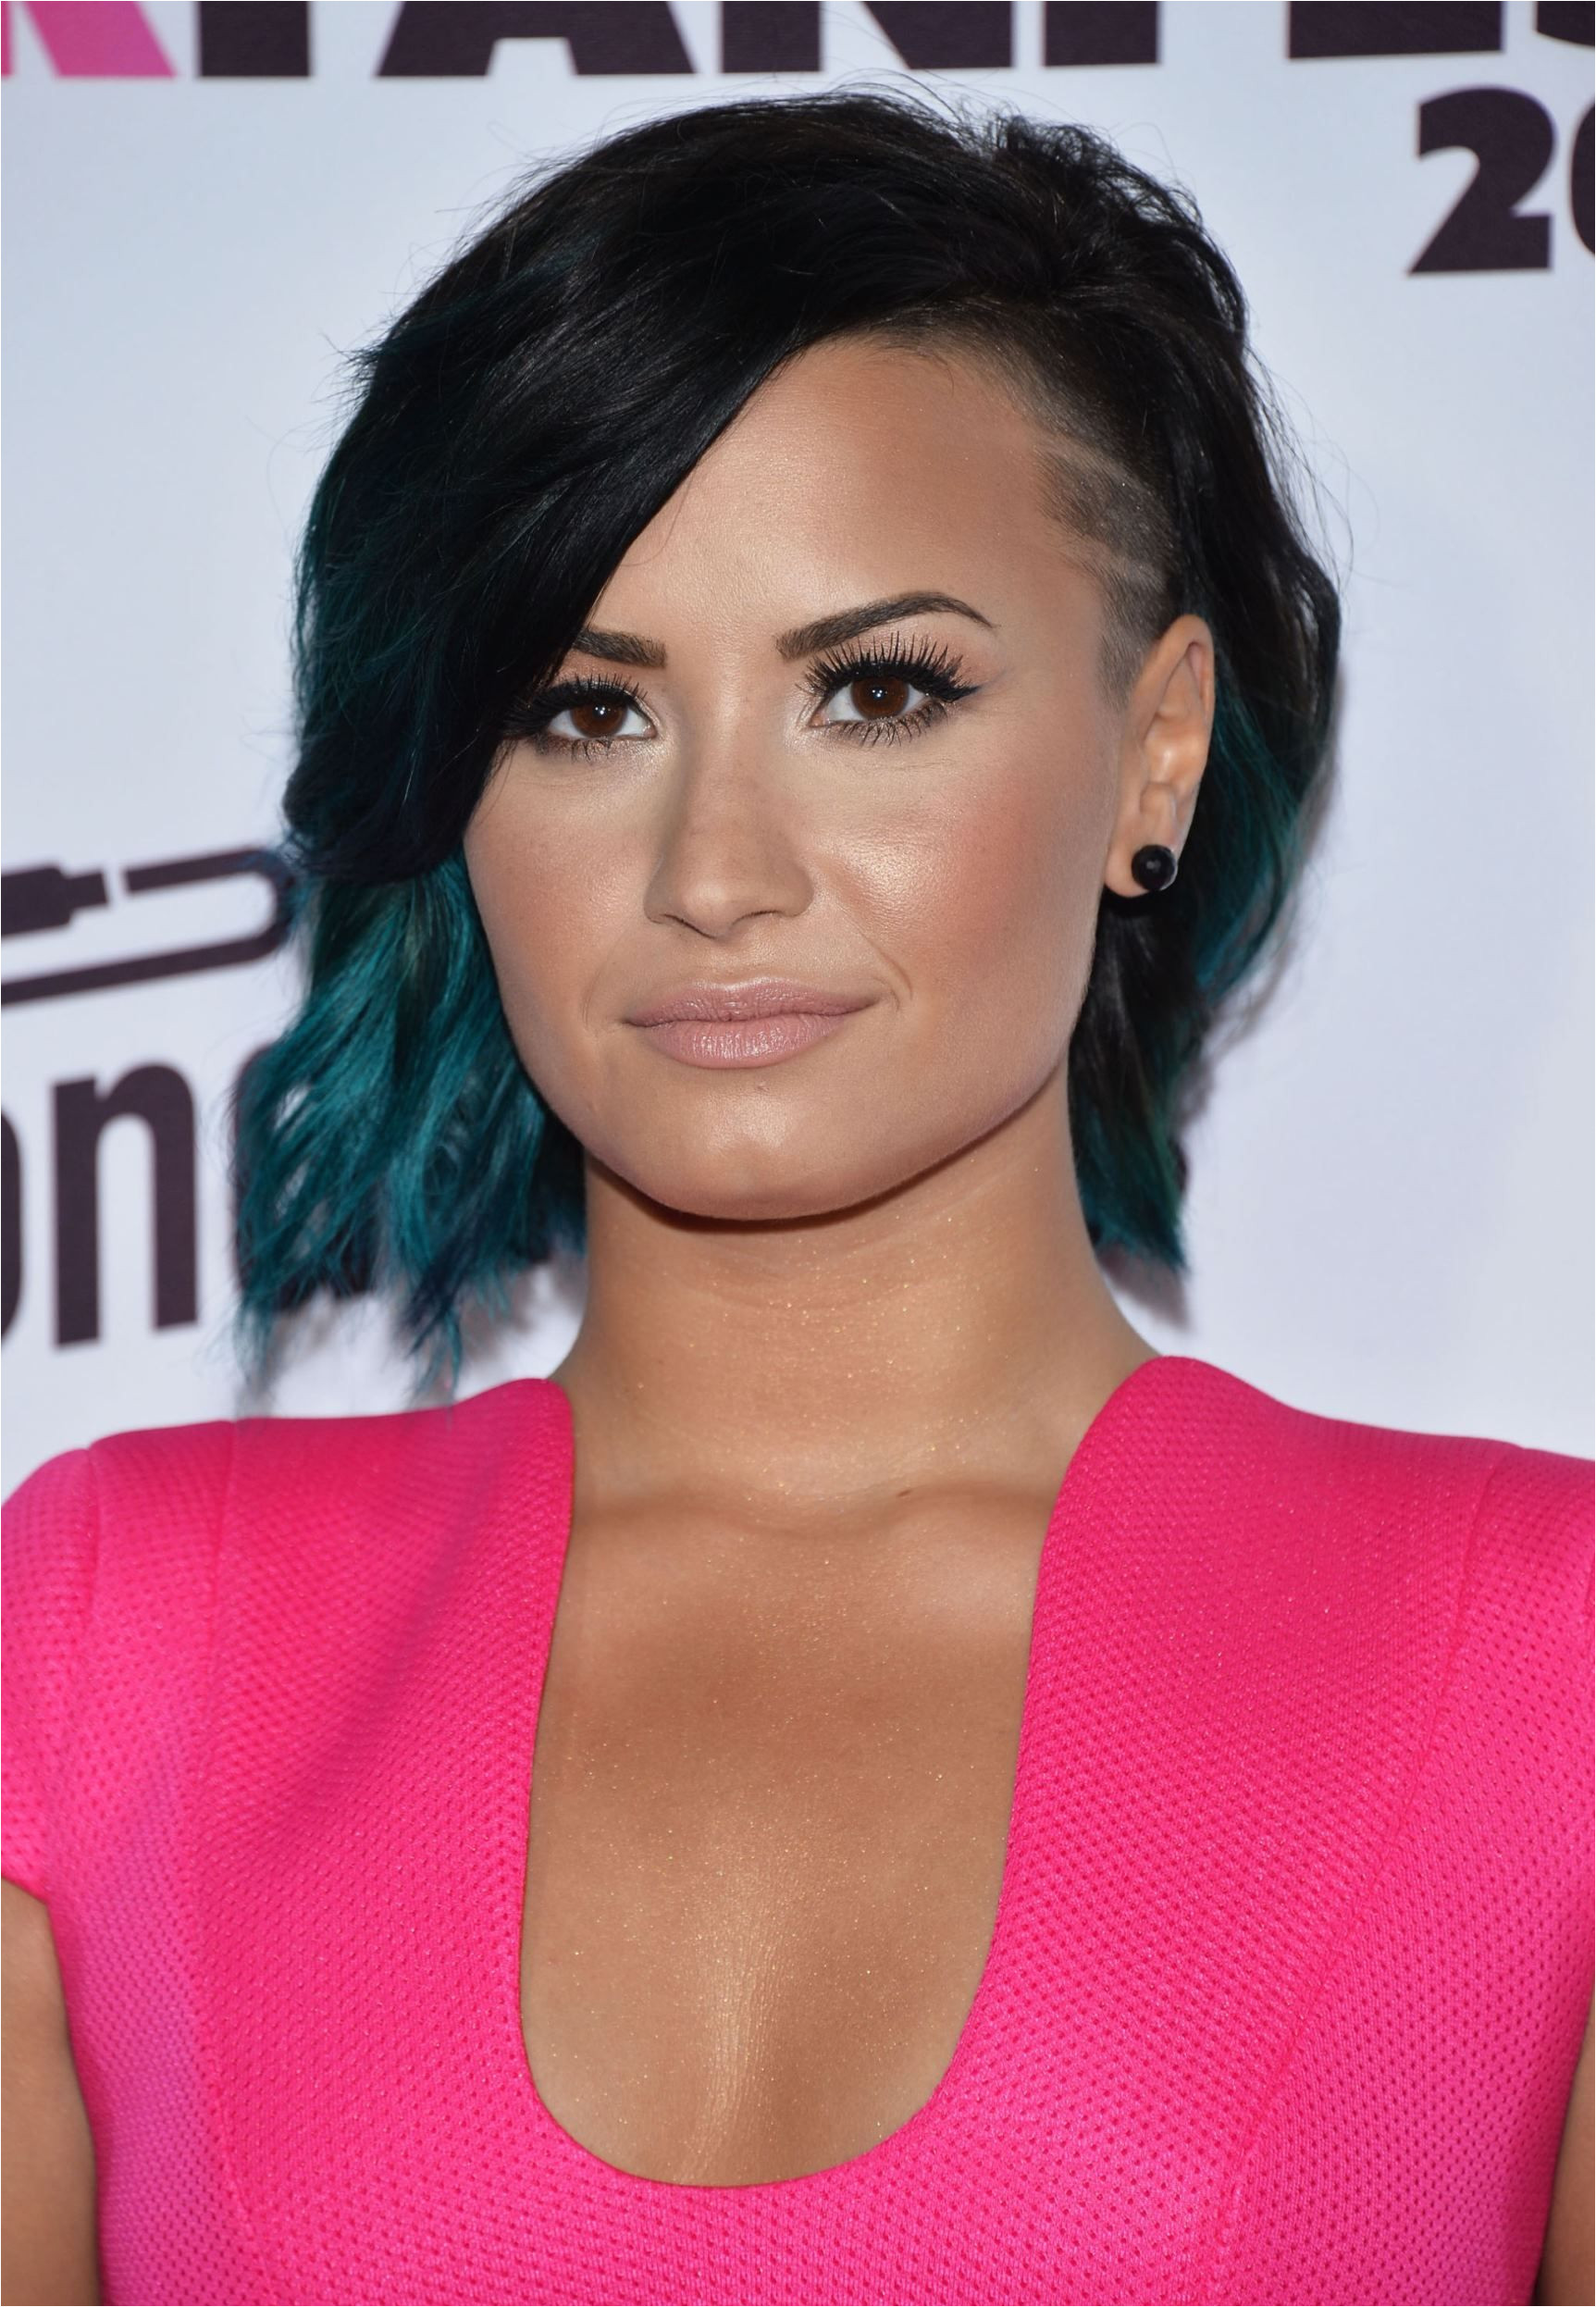 Preeeeeetty Our Favorite Celebs with Rainbow Hair Demi Lovato in Teal Ombre